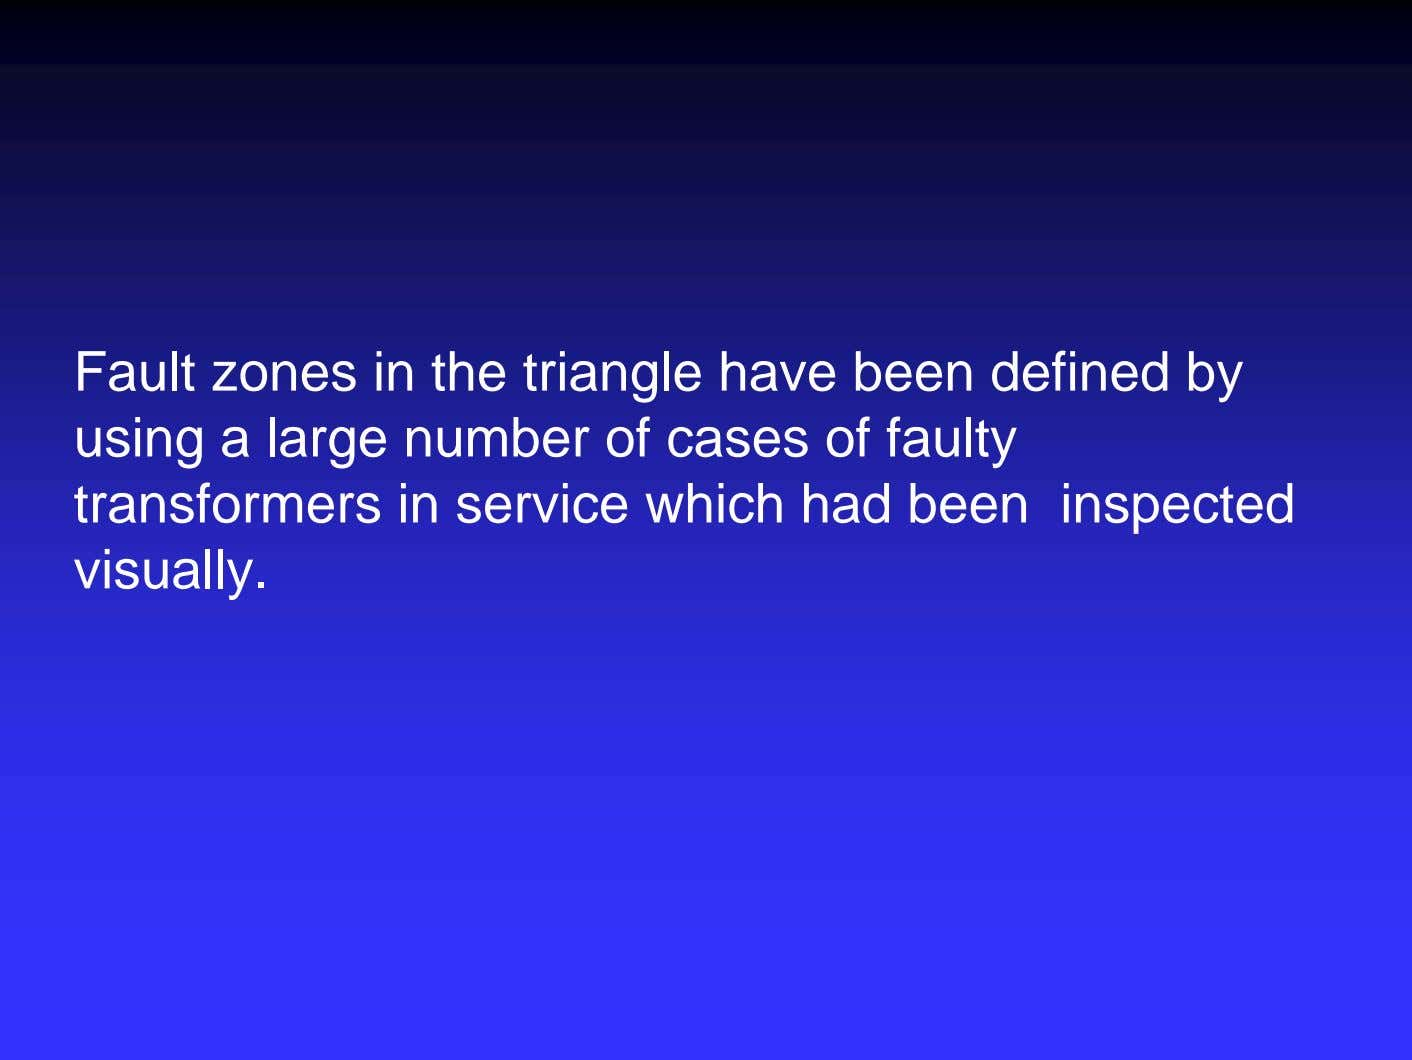 Fault zones in the triangle have been defined by using a large number of cases